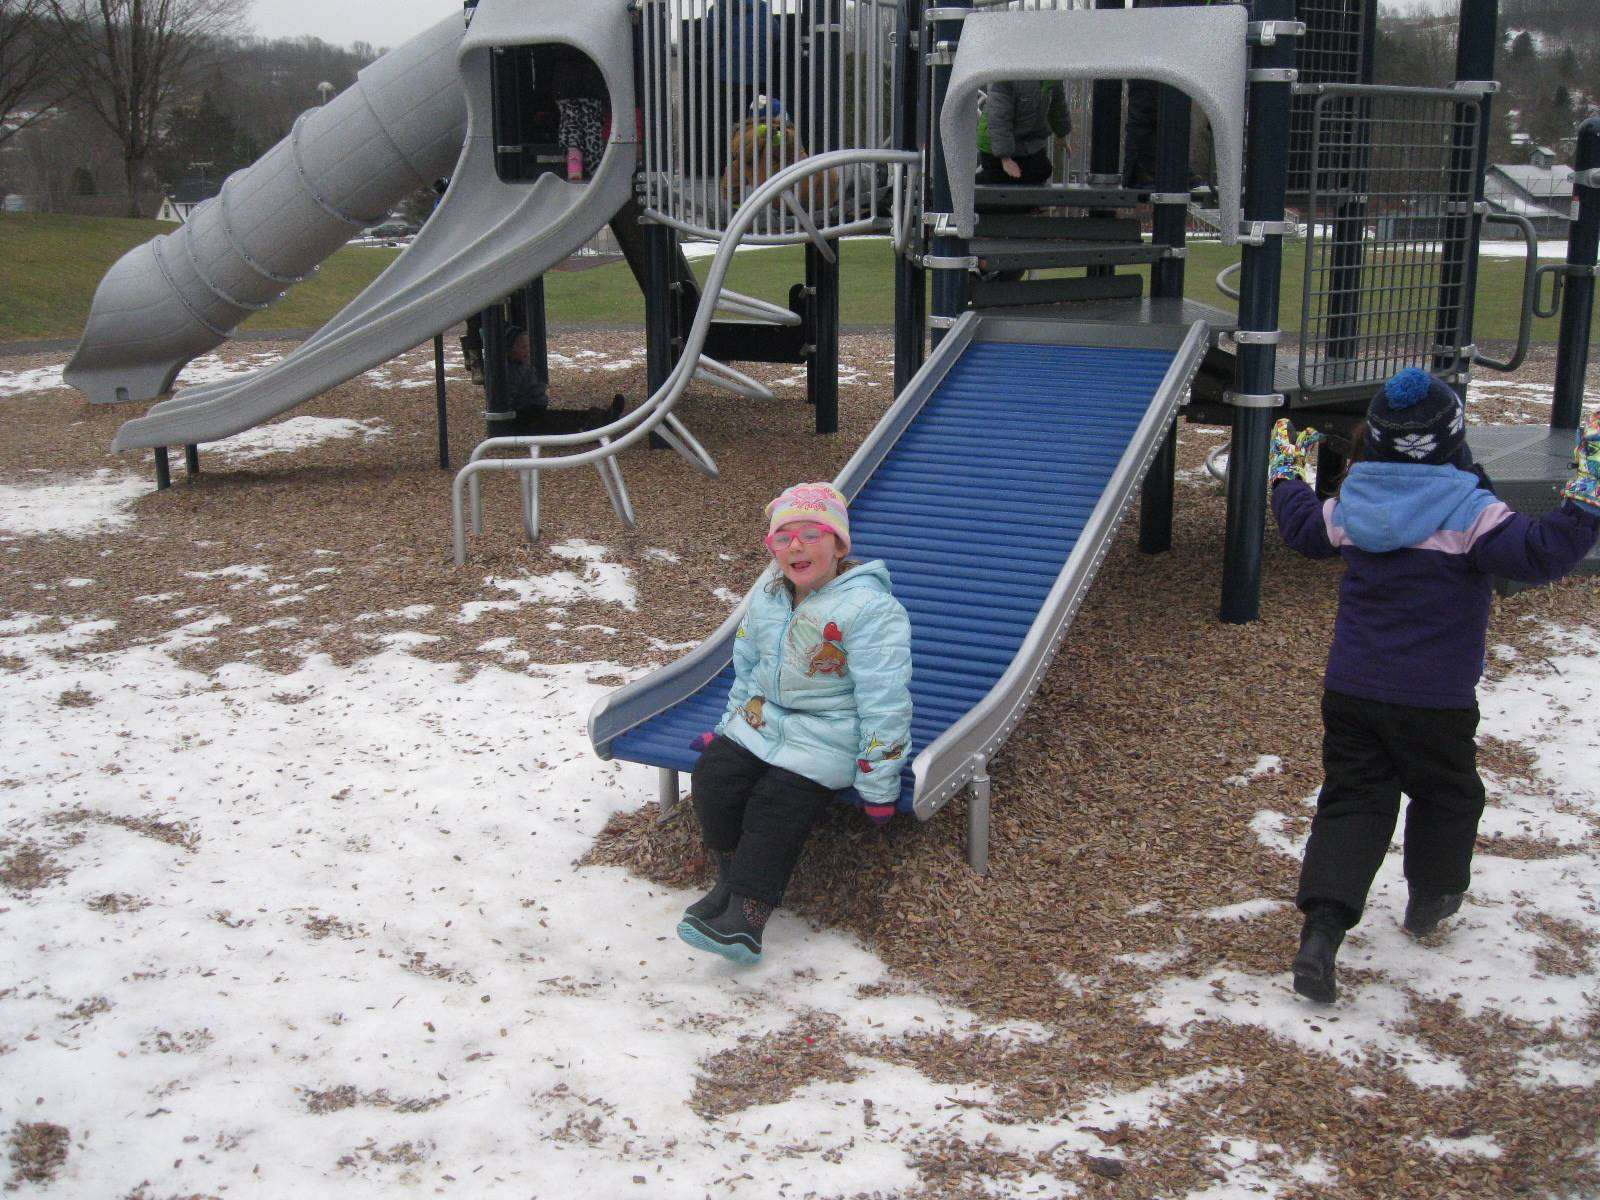 A student sits on slide.